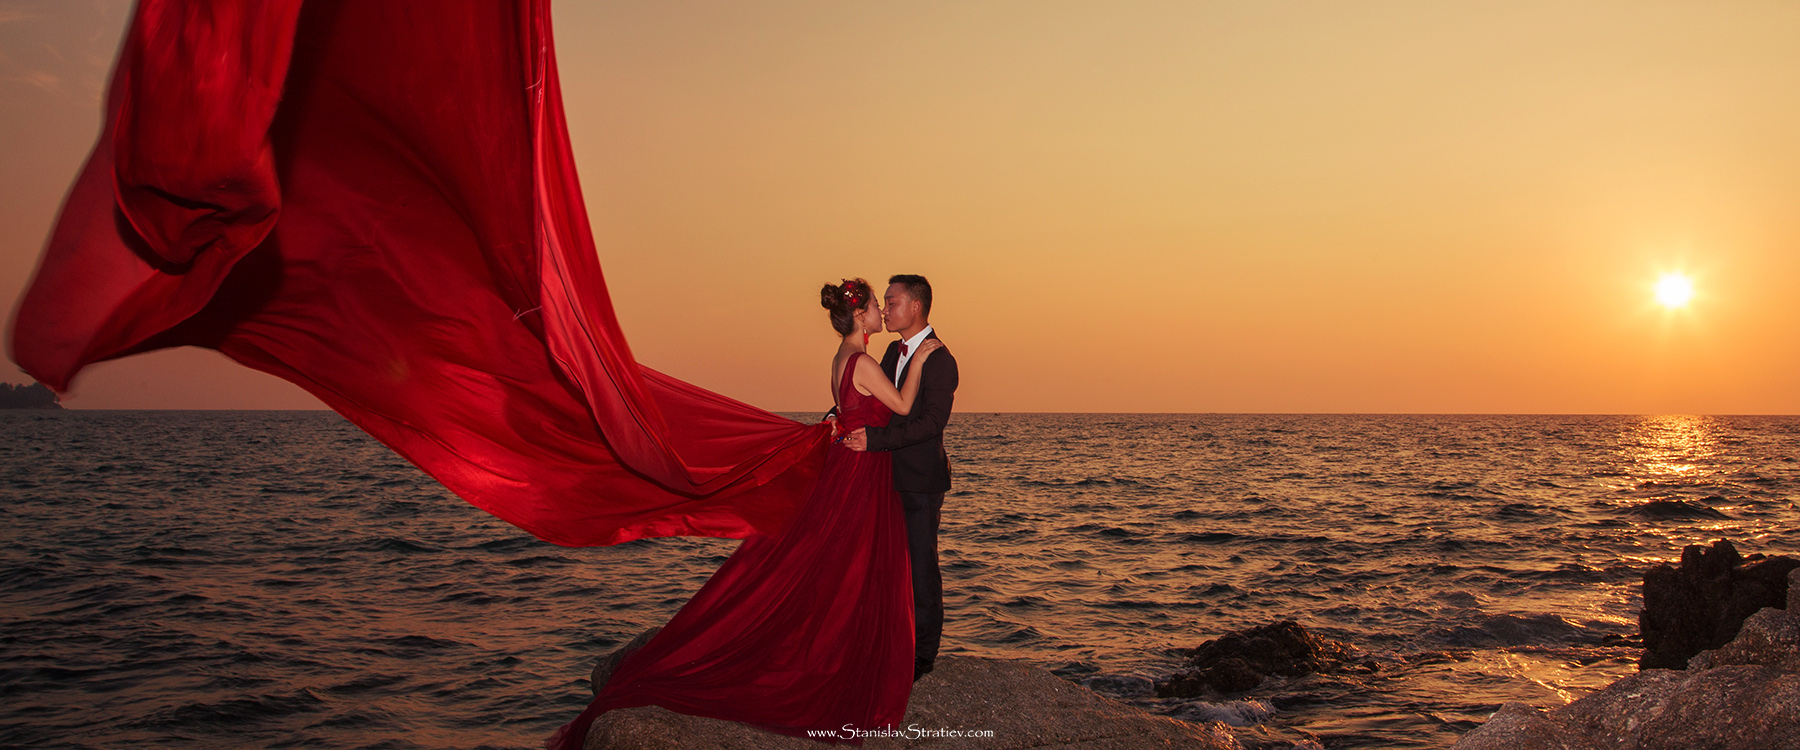 Destination Wedding Photographer